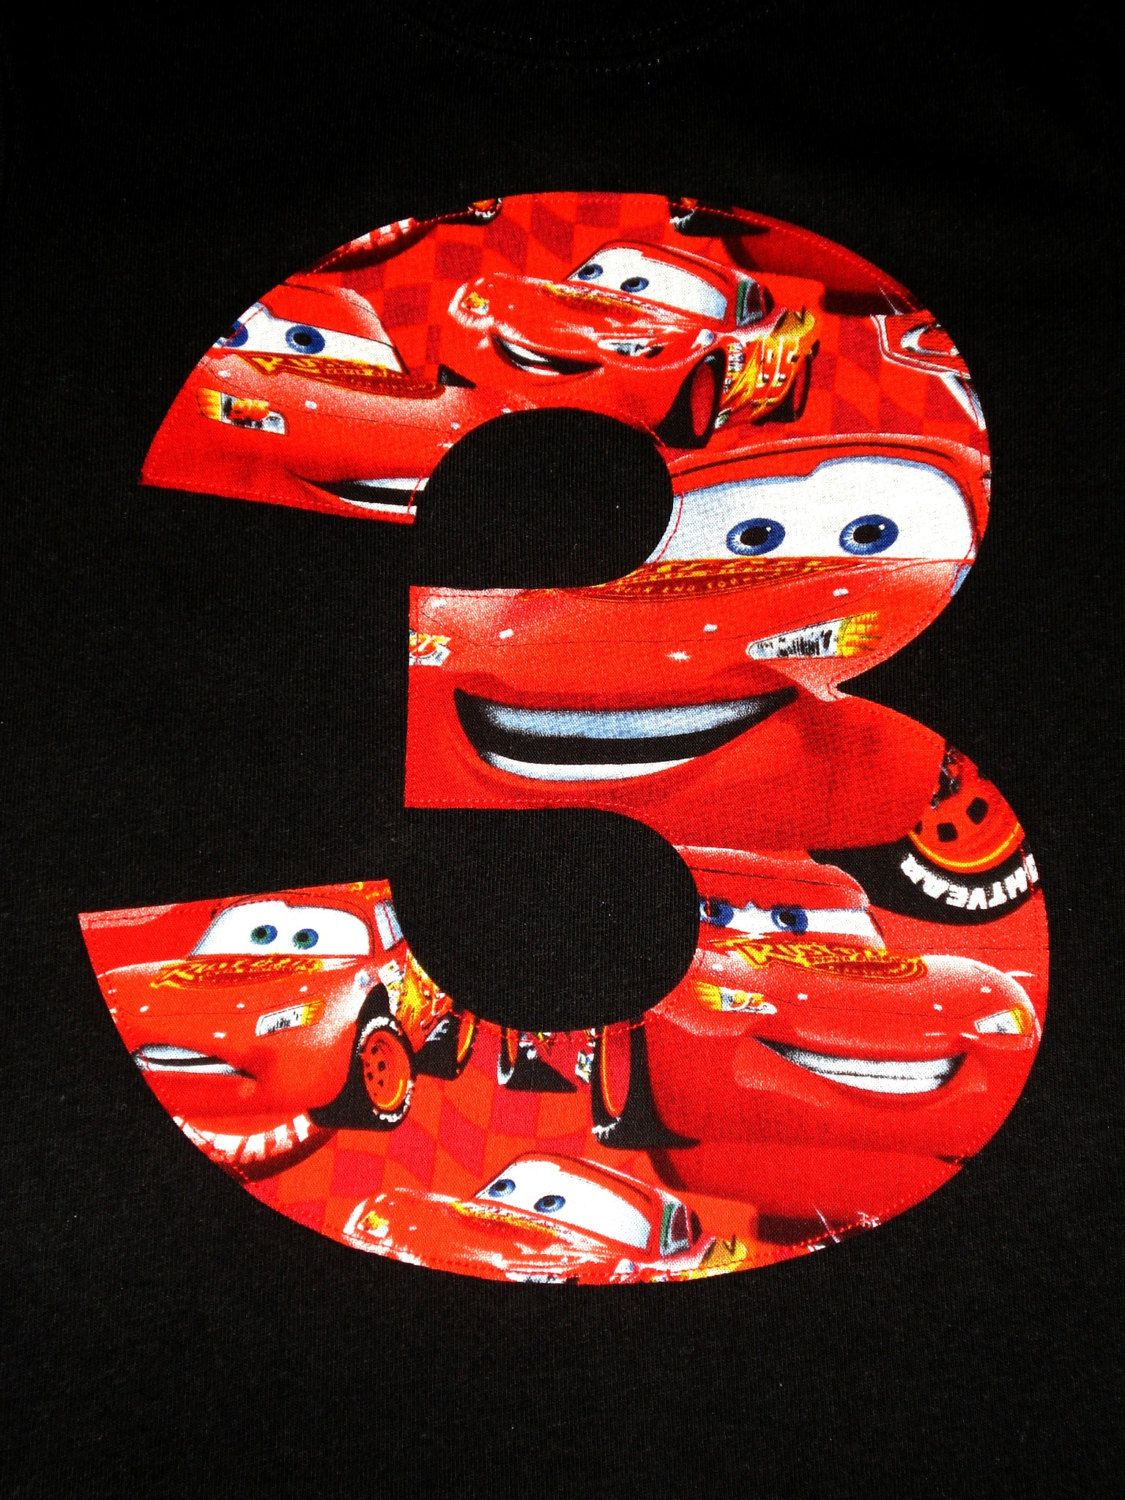 lightning mcqueen tow mater cars disney by